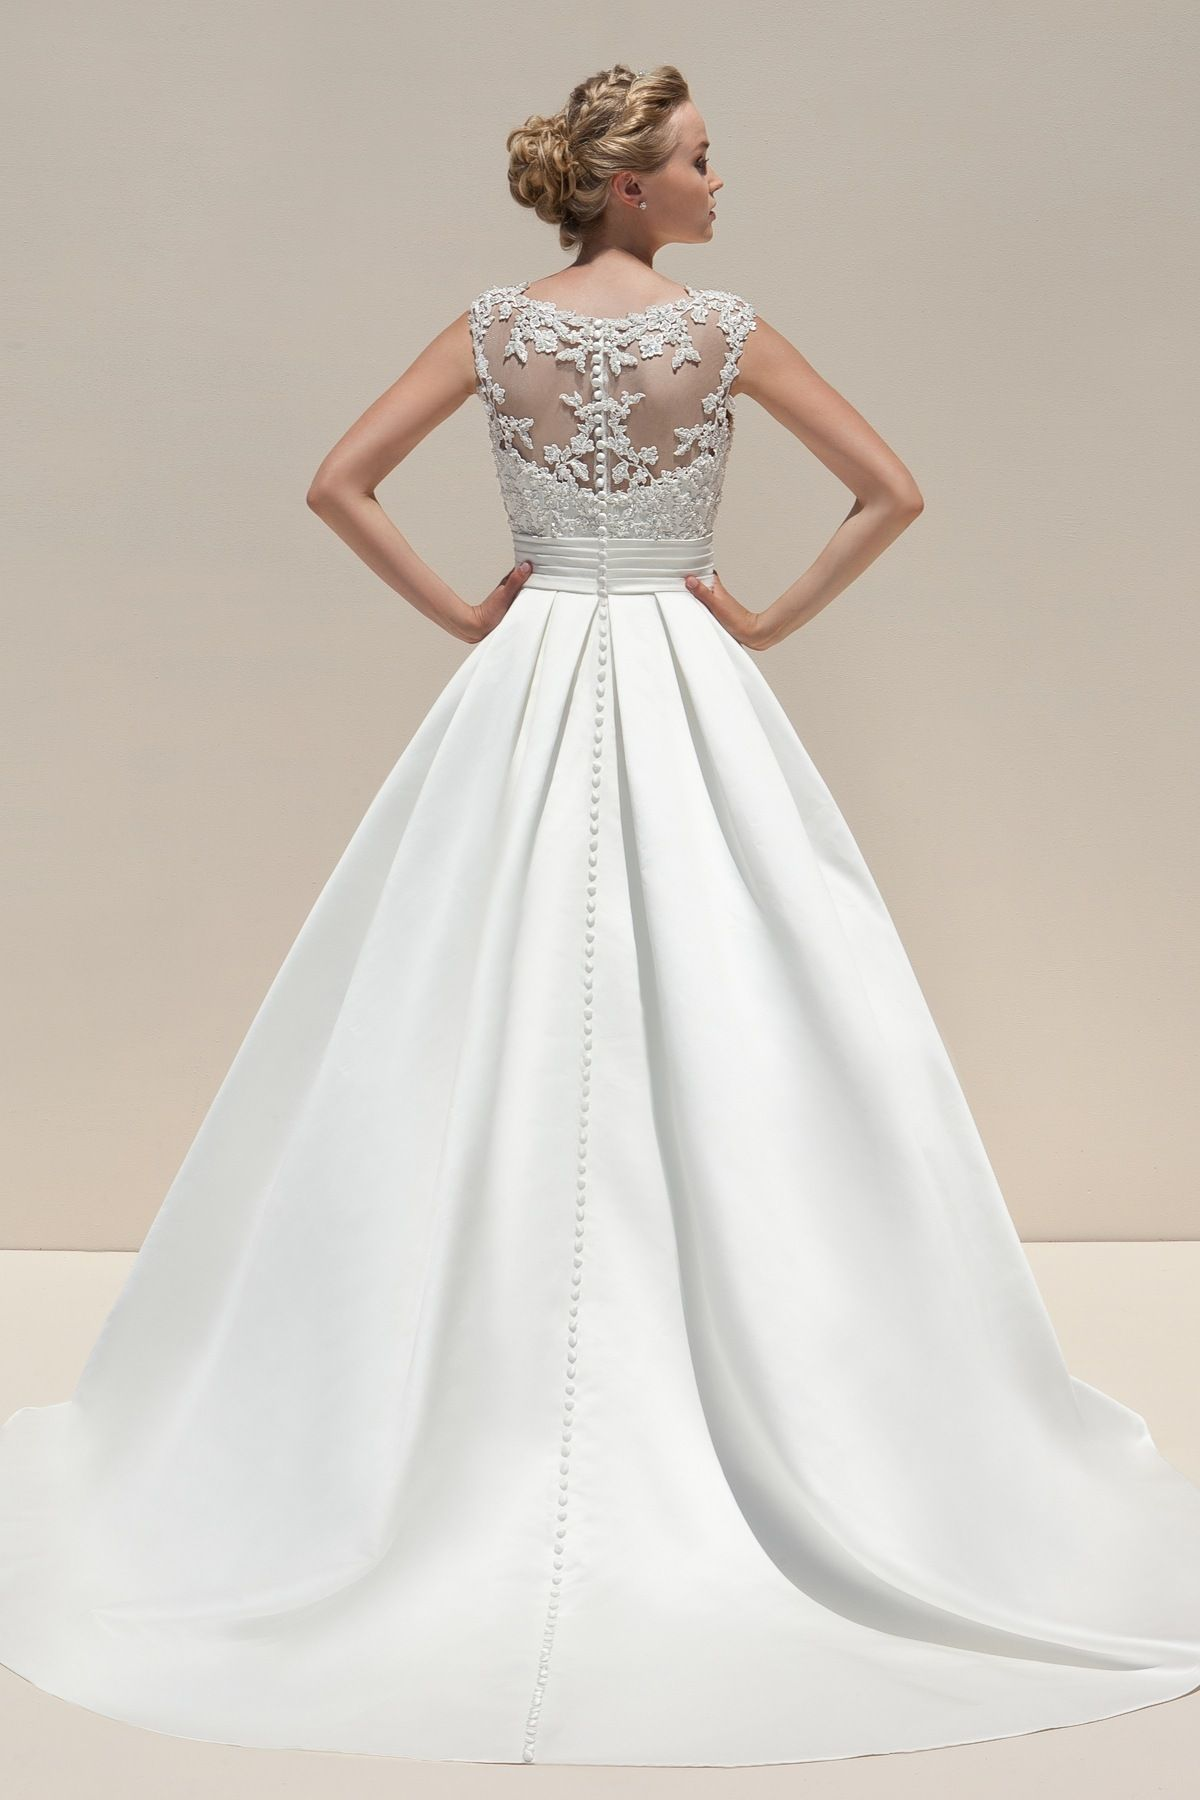 Mark Lesley Bridal Collection From